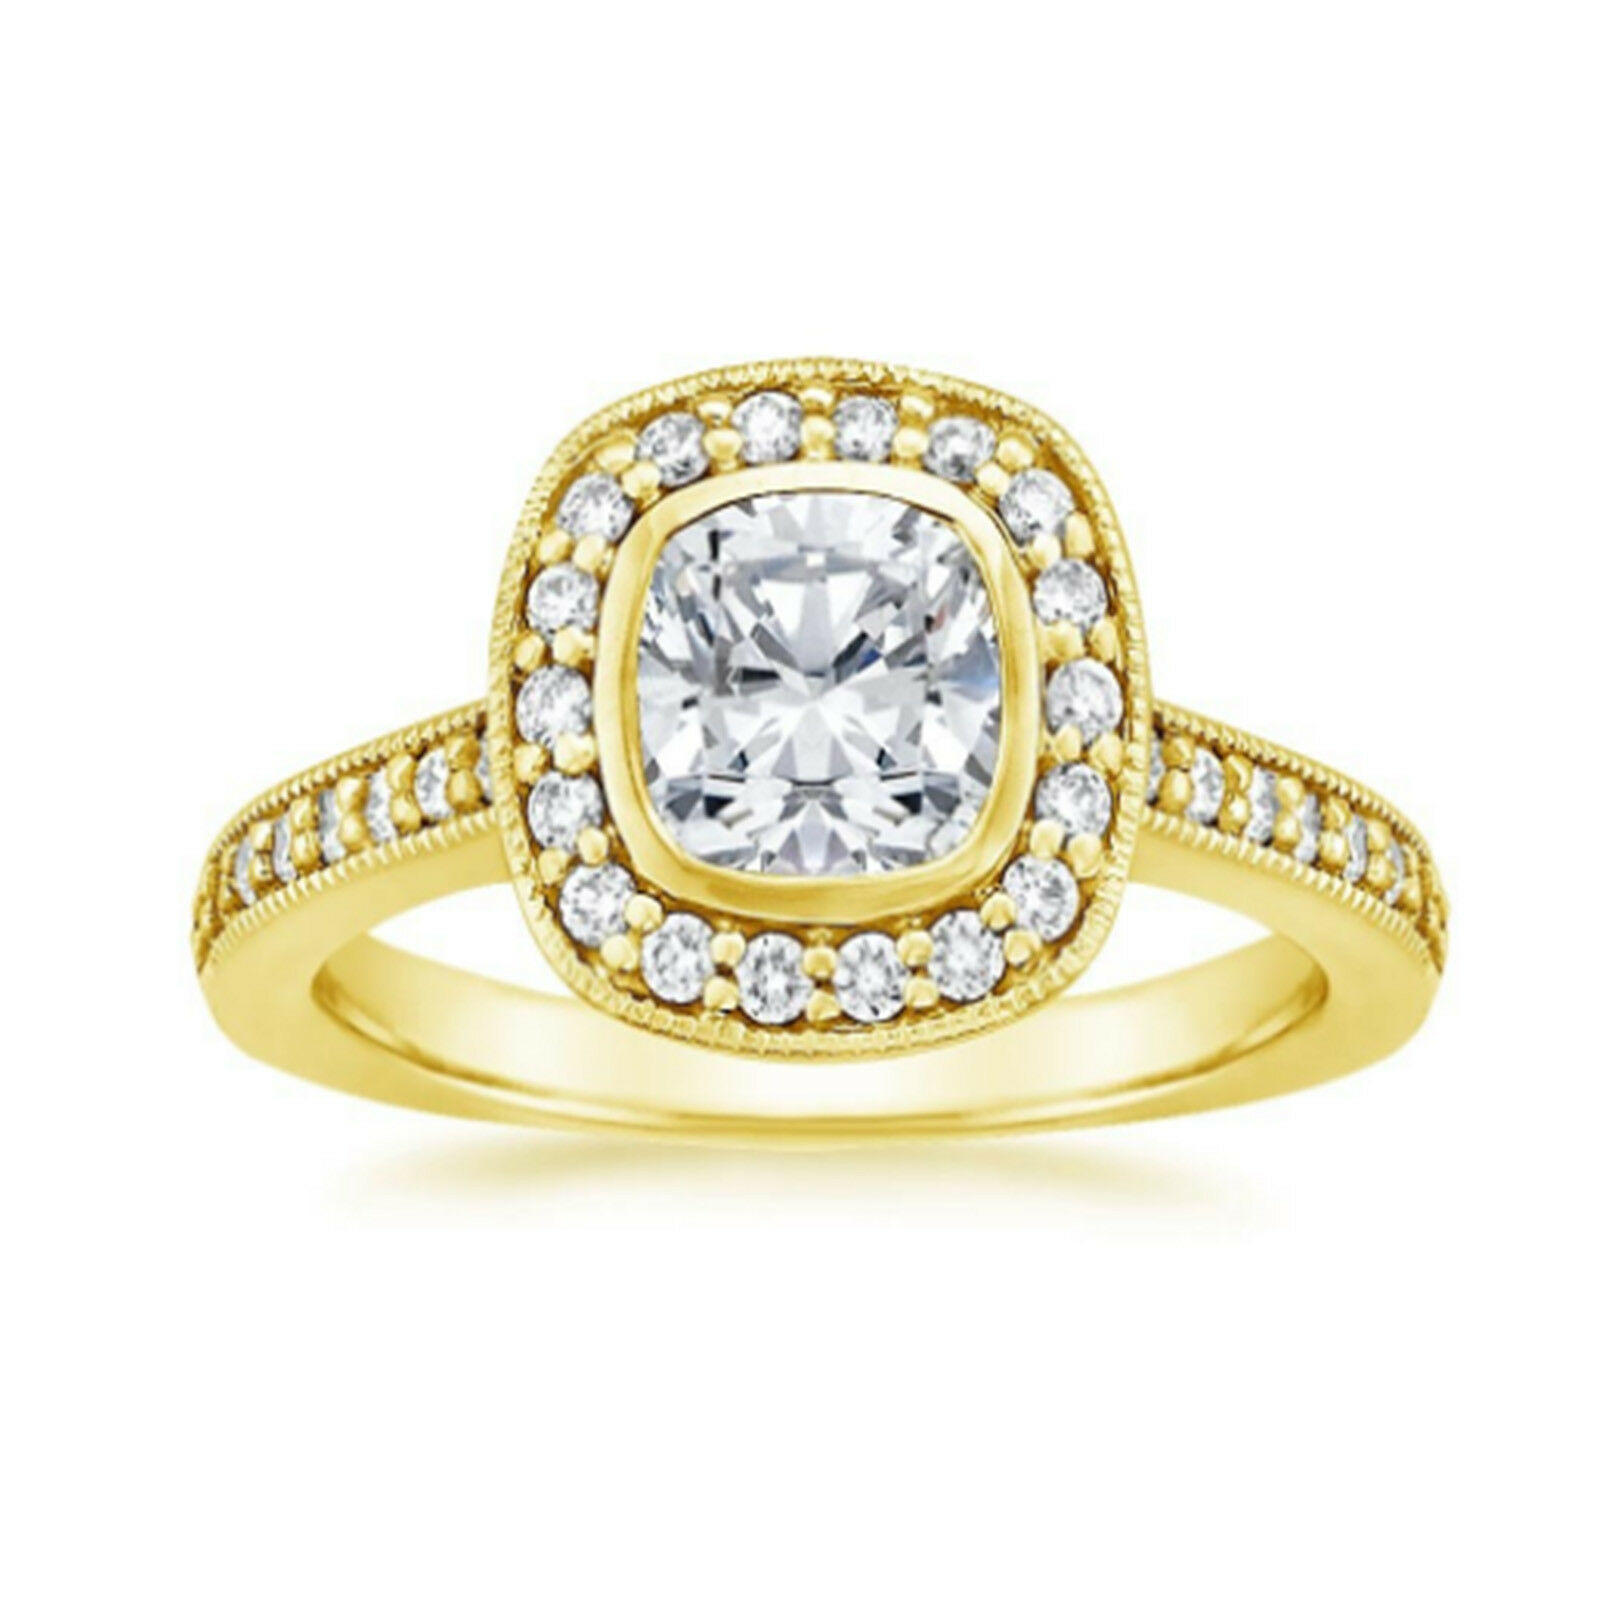 0.85 Ct Cushion Cut Diamond Engagement 14K Yellow gold Wedding Rings Size 7 6.5